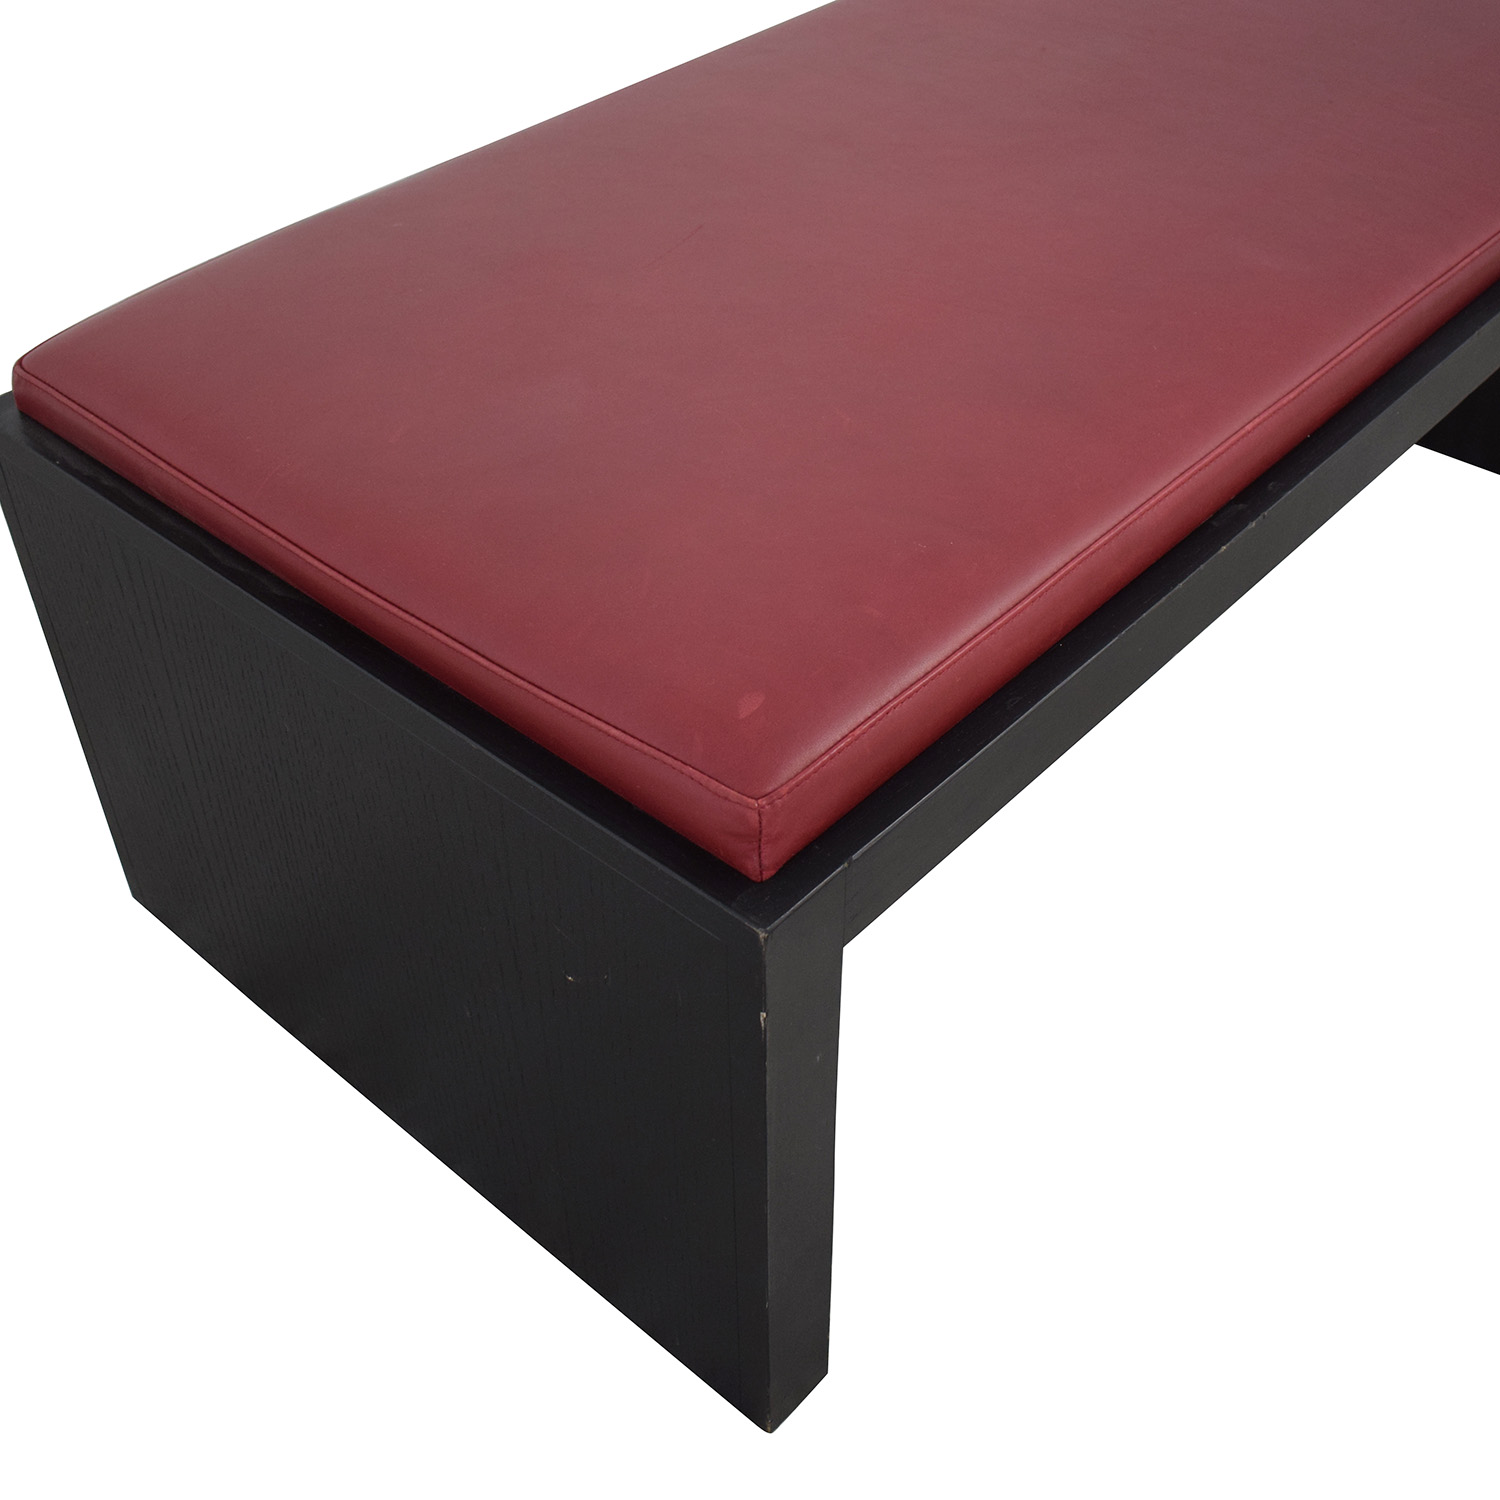 Wood and Leather Bench Coffee Table